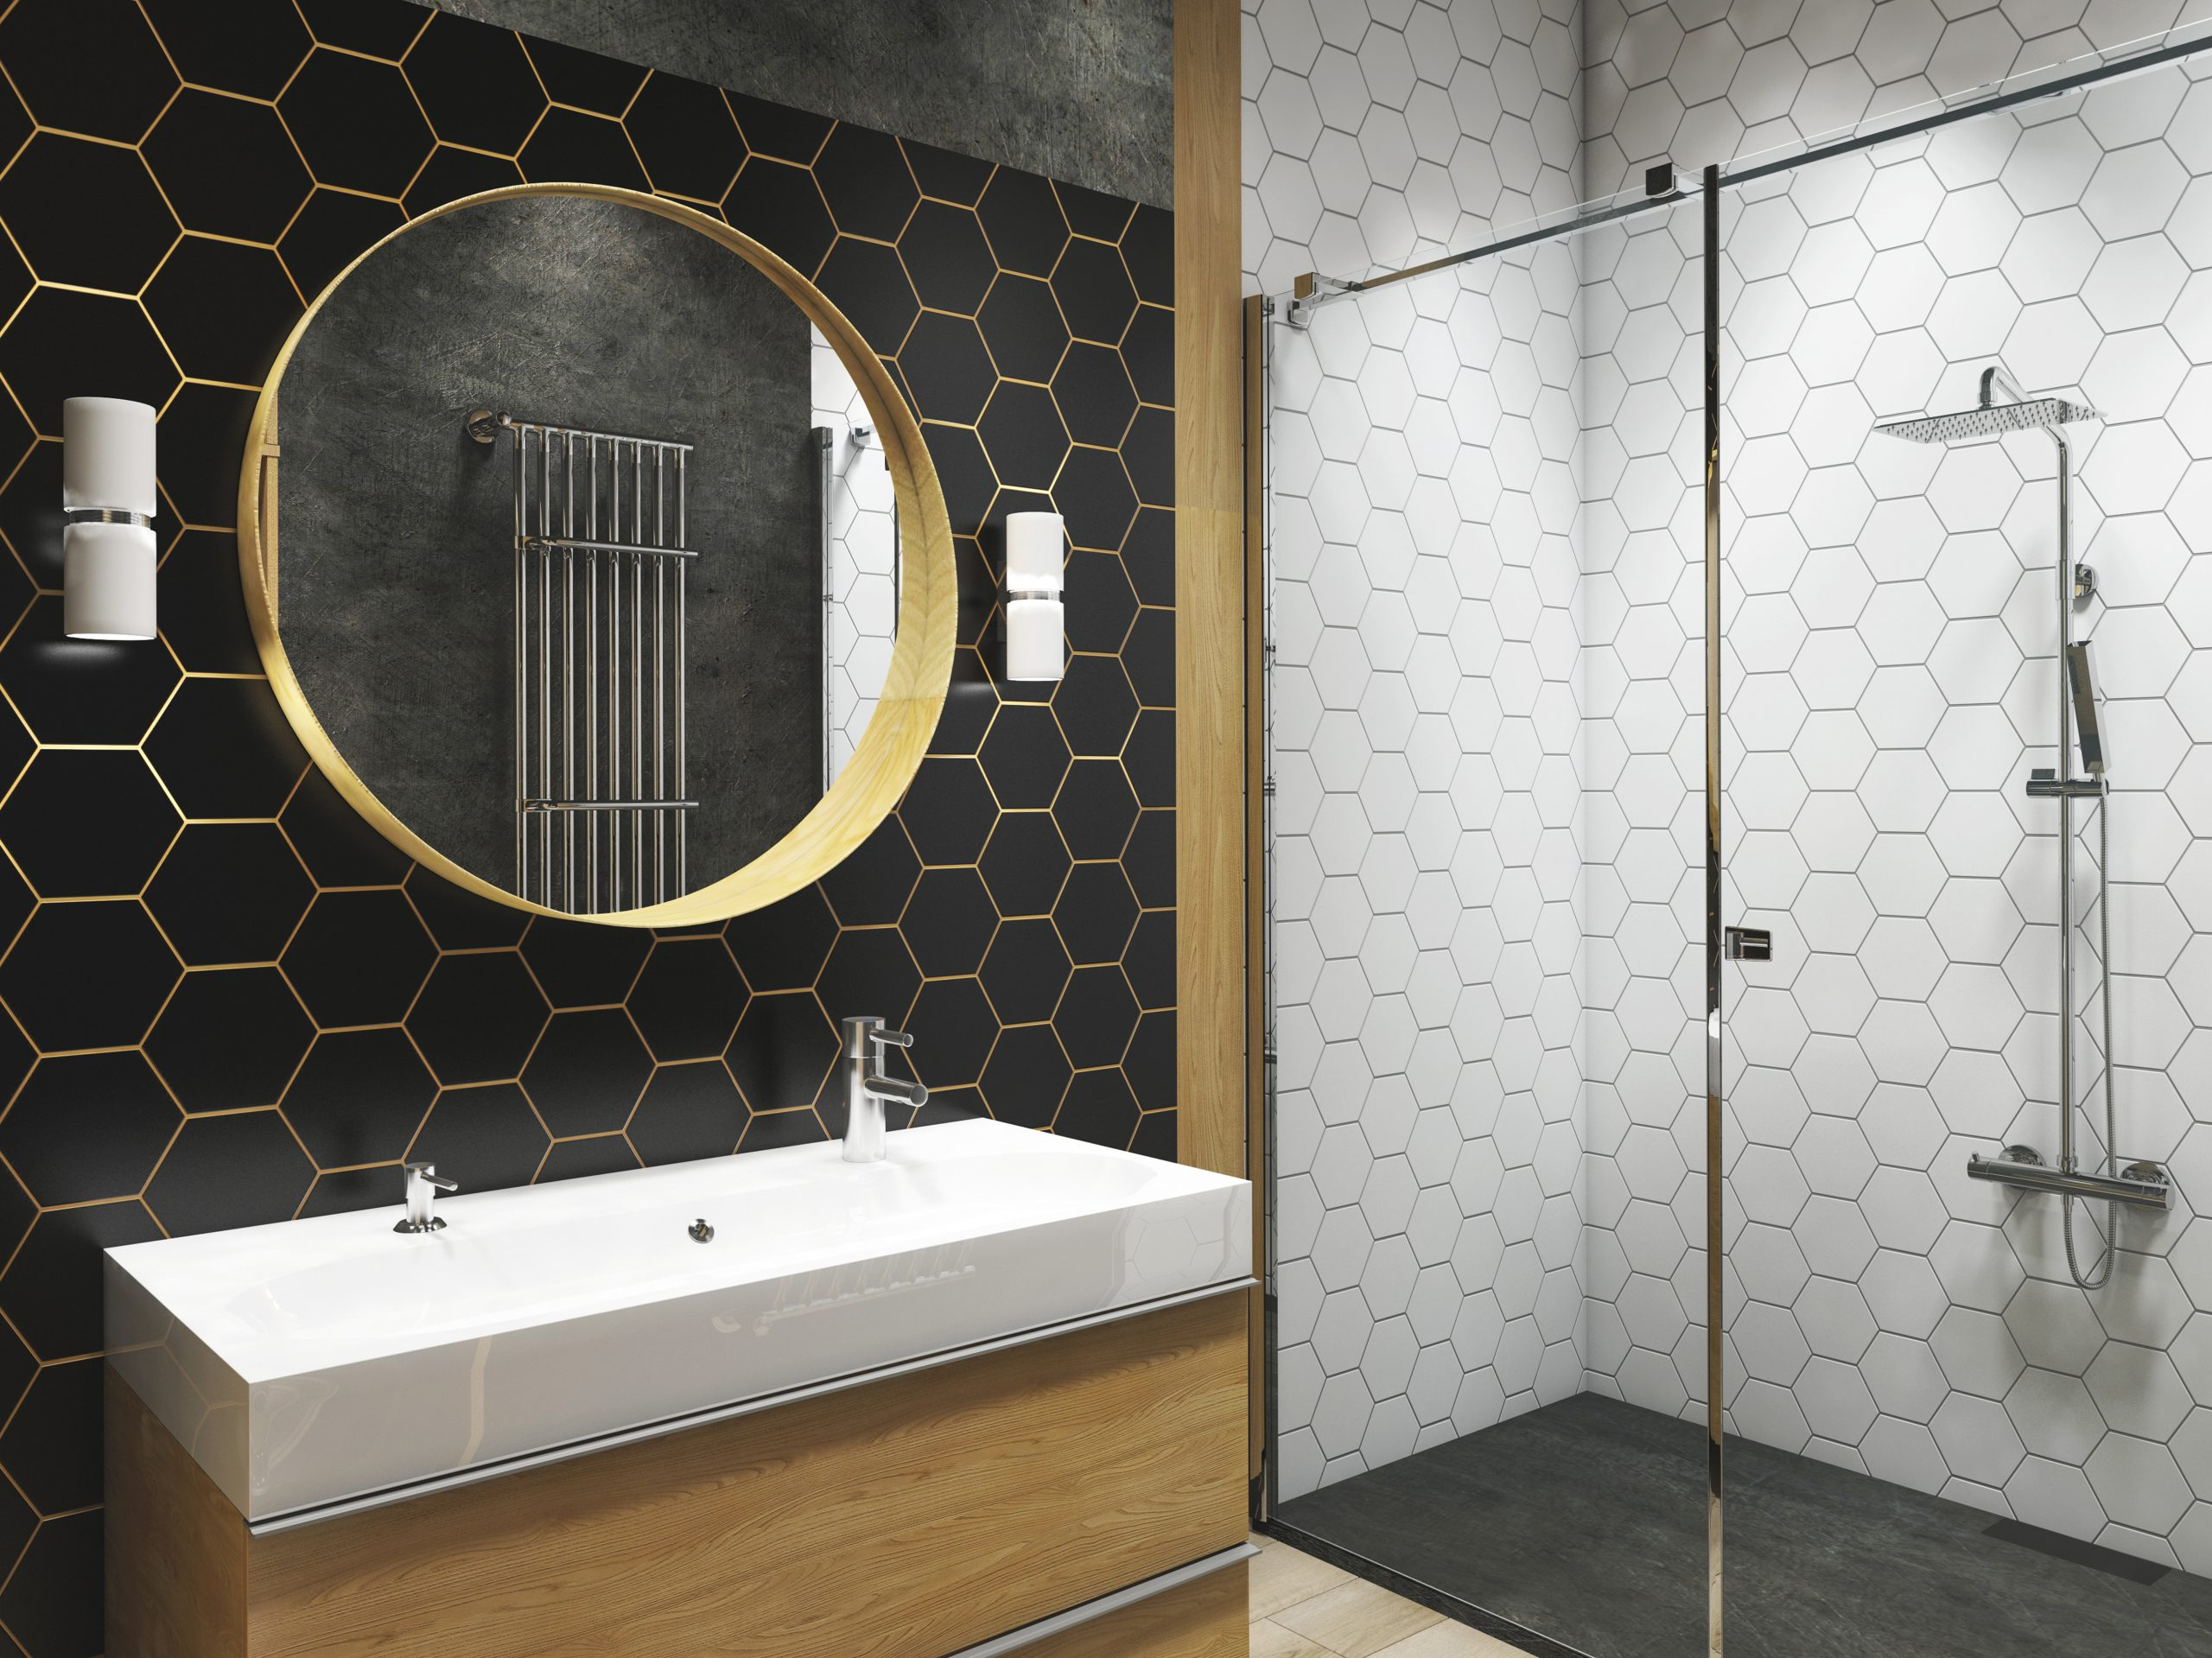 interesting bathroom ideas - Contrast white and black tile mosaic with golden accents, round mirror and H glass sliding shower doors and white m